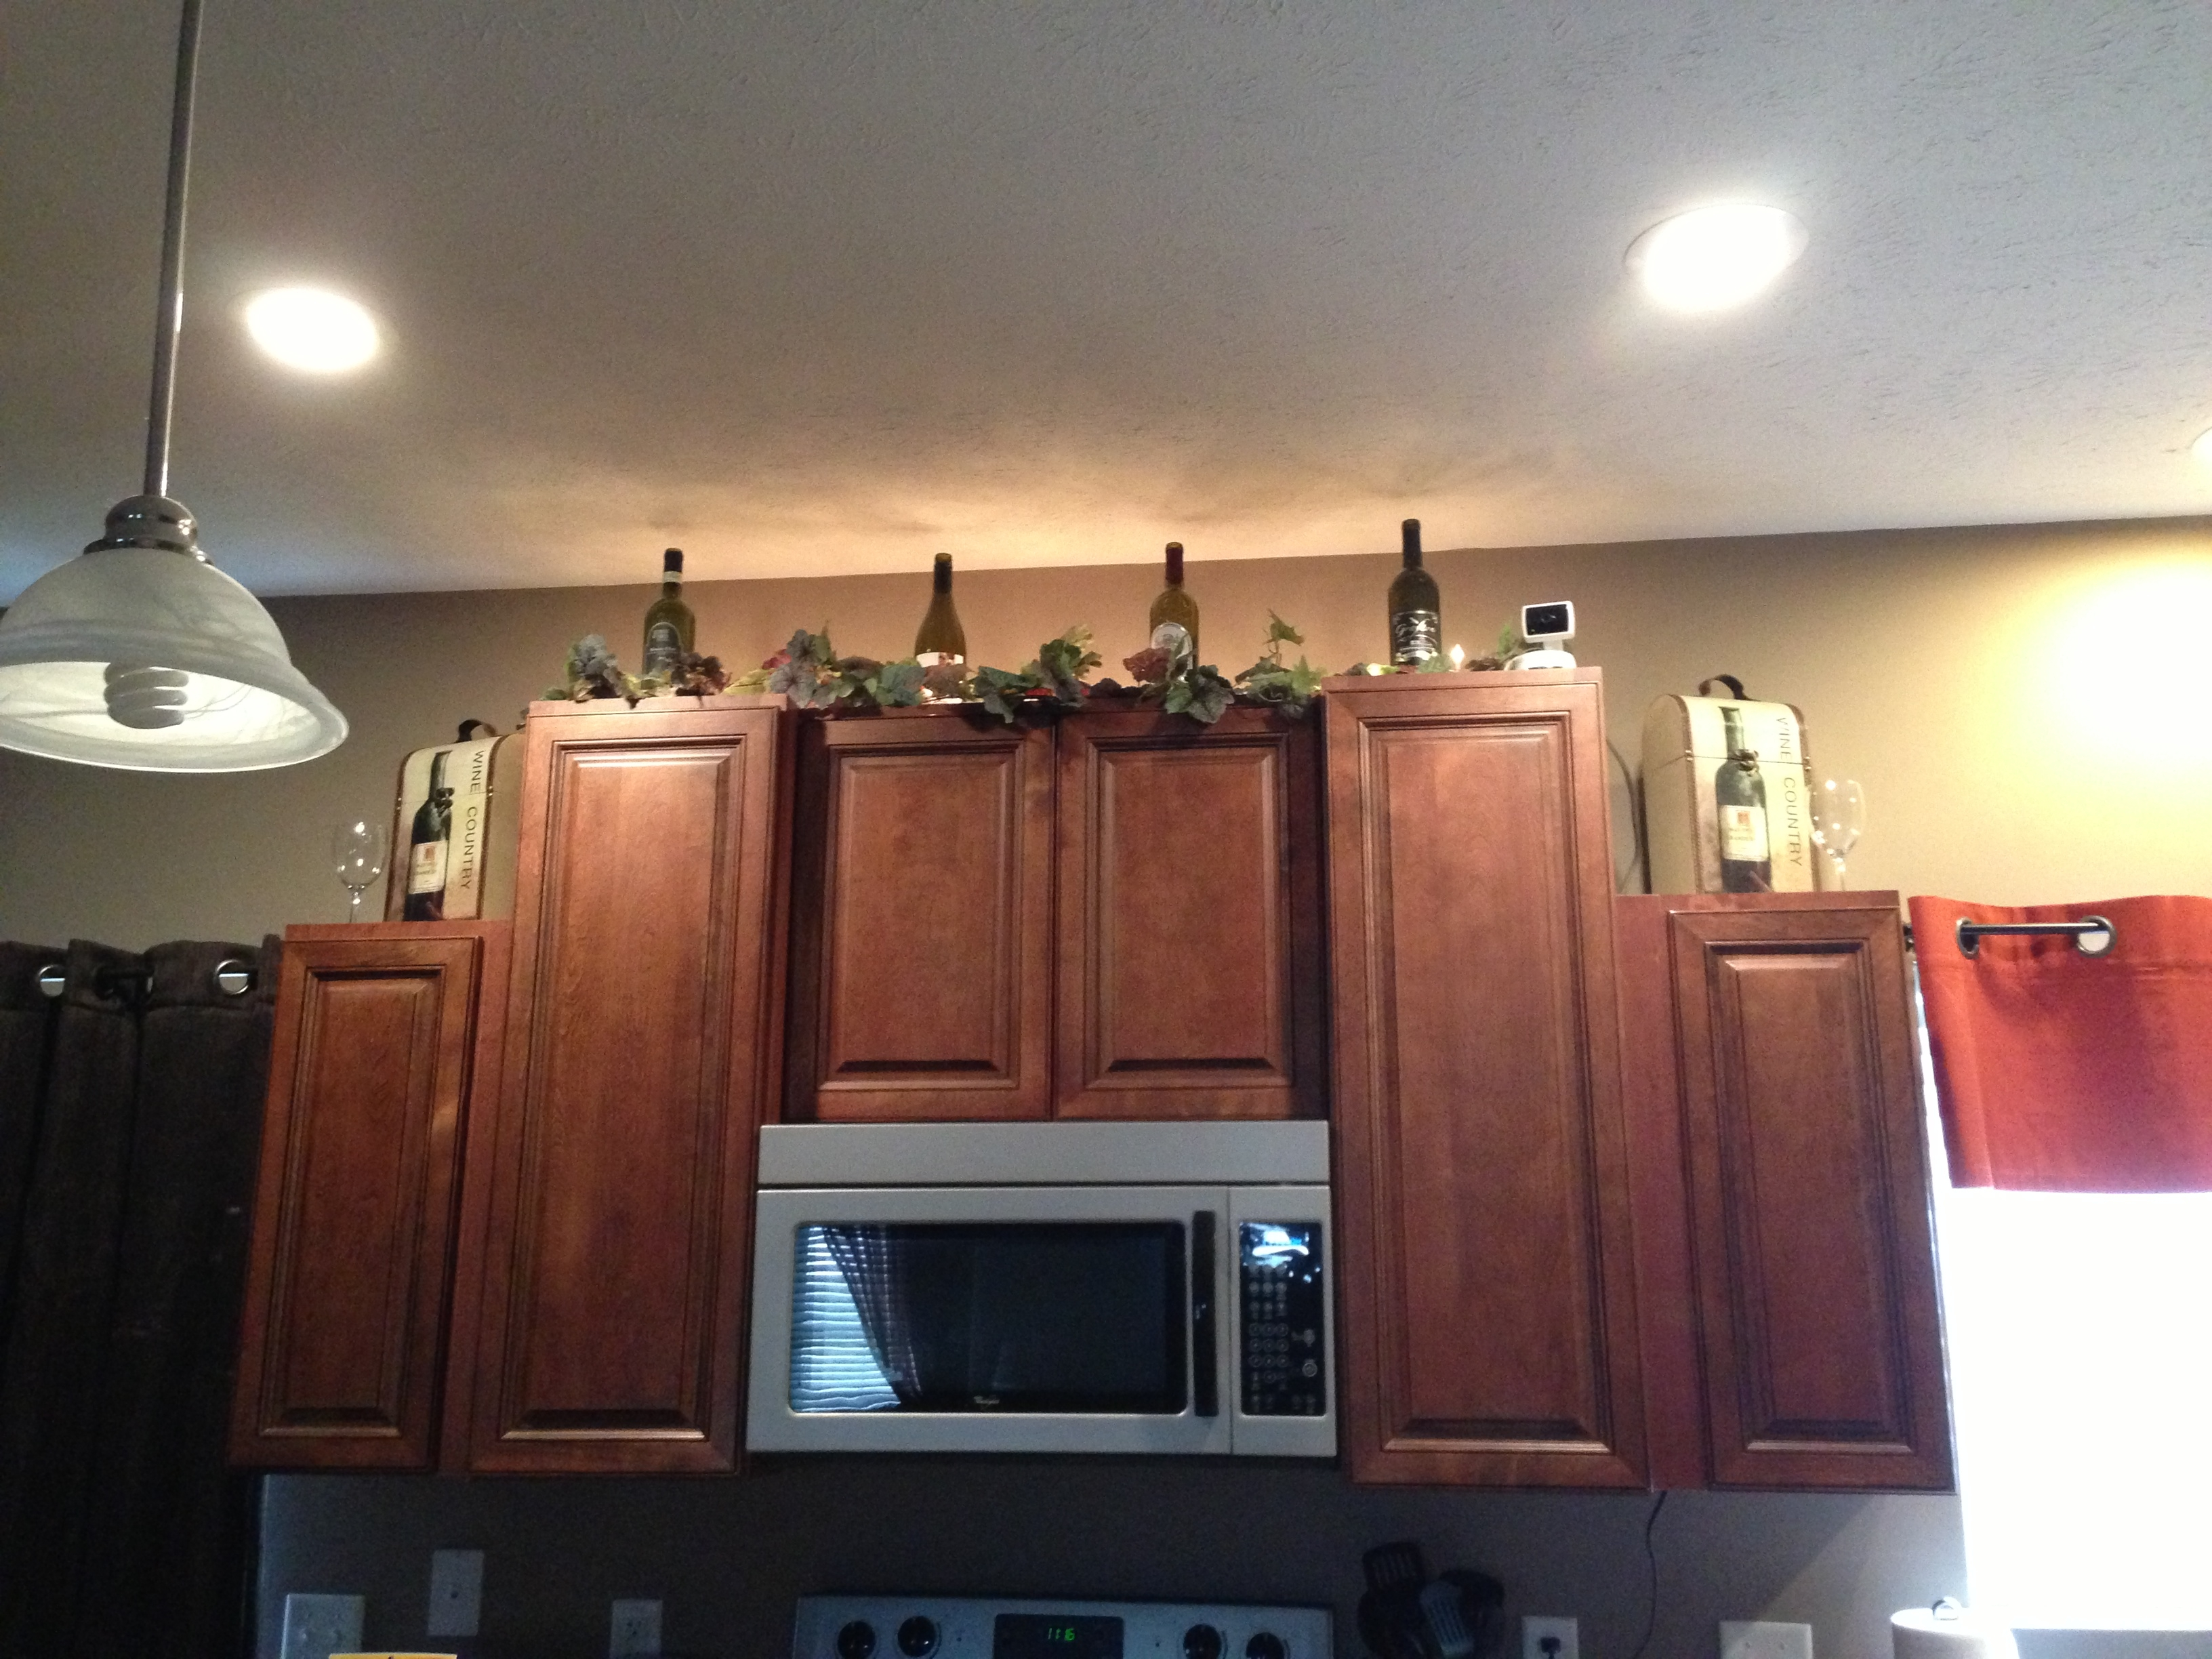 Wine Bottle Decorations For Kitchen